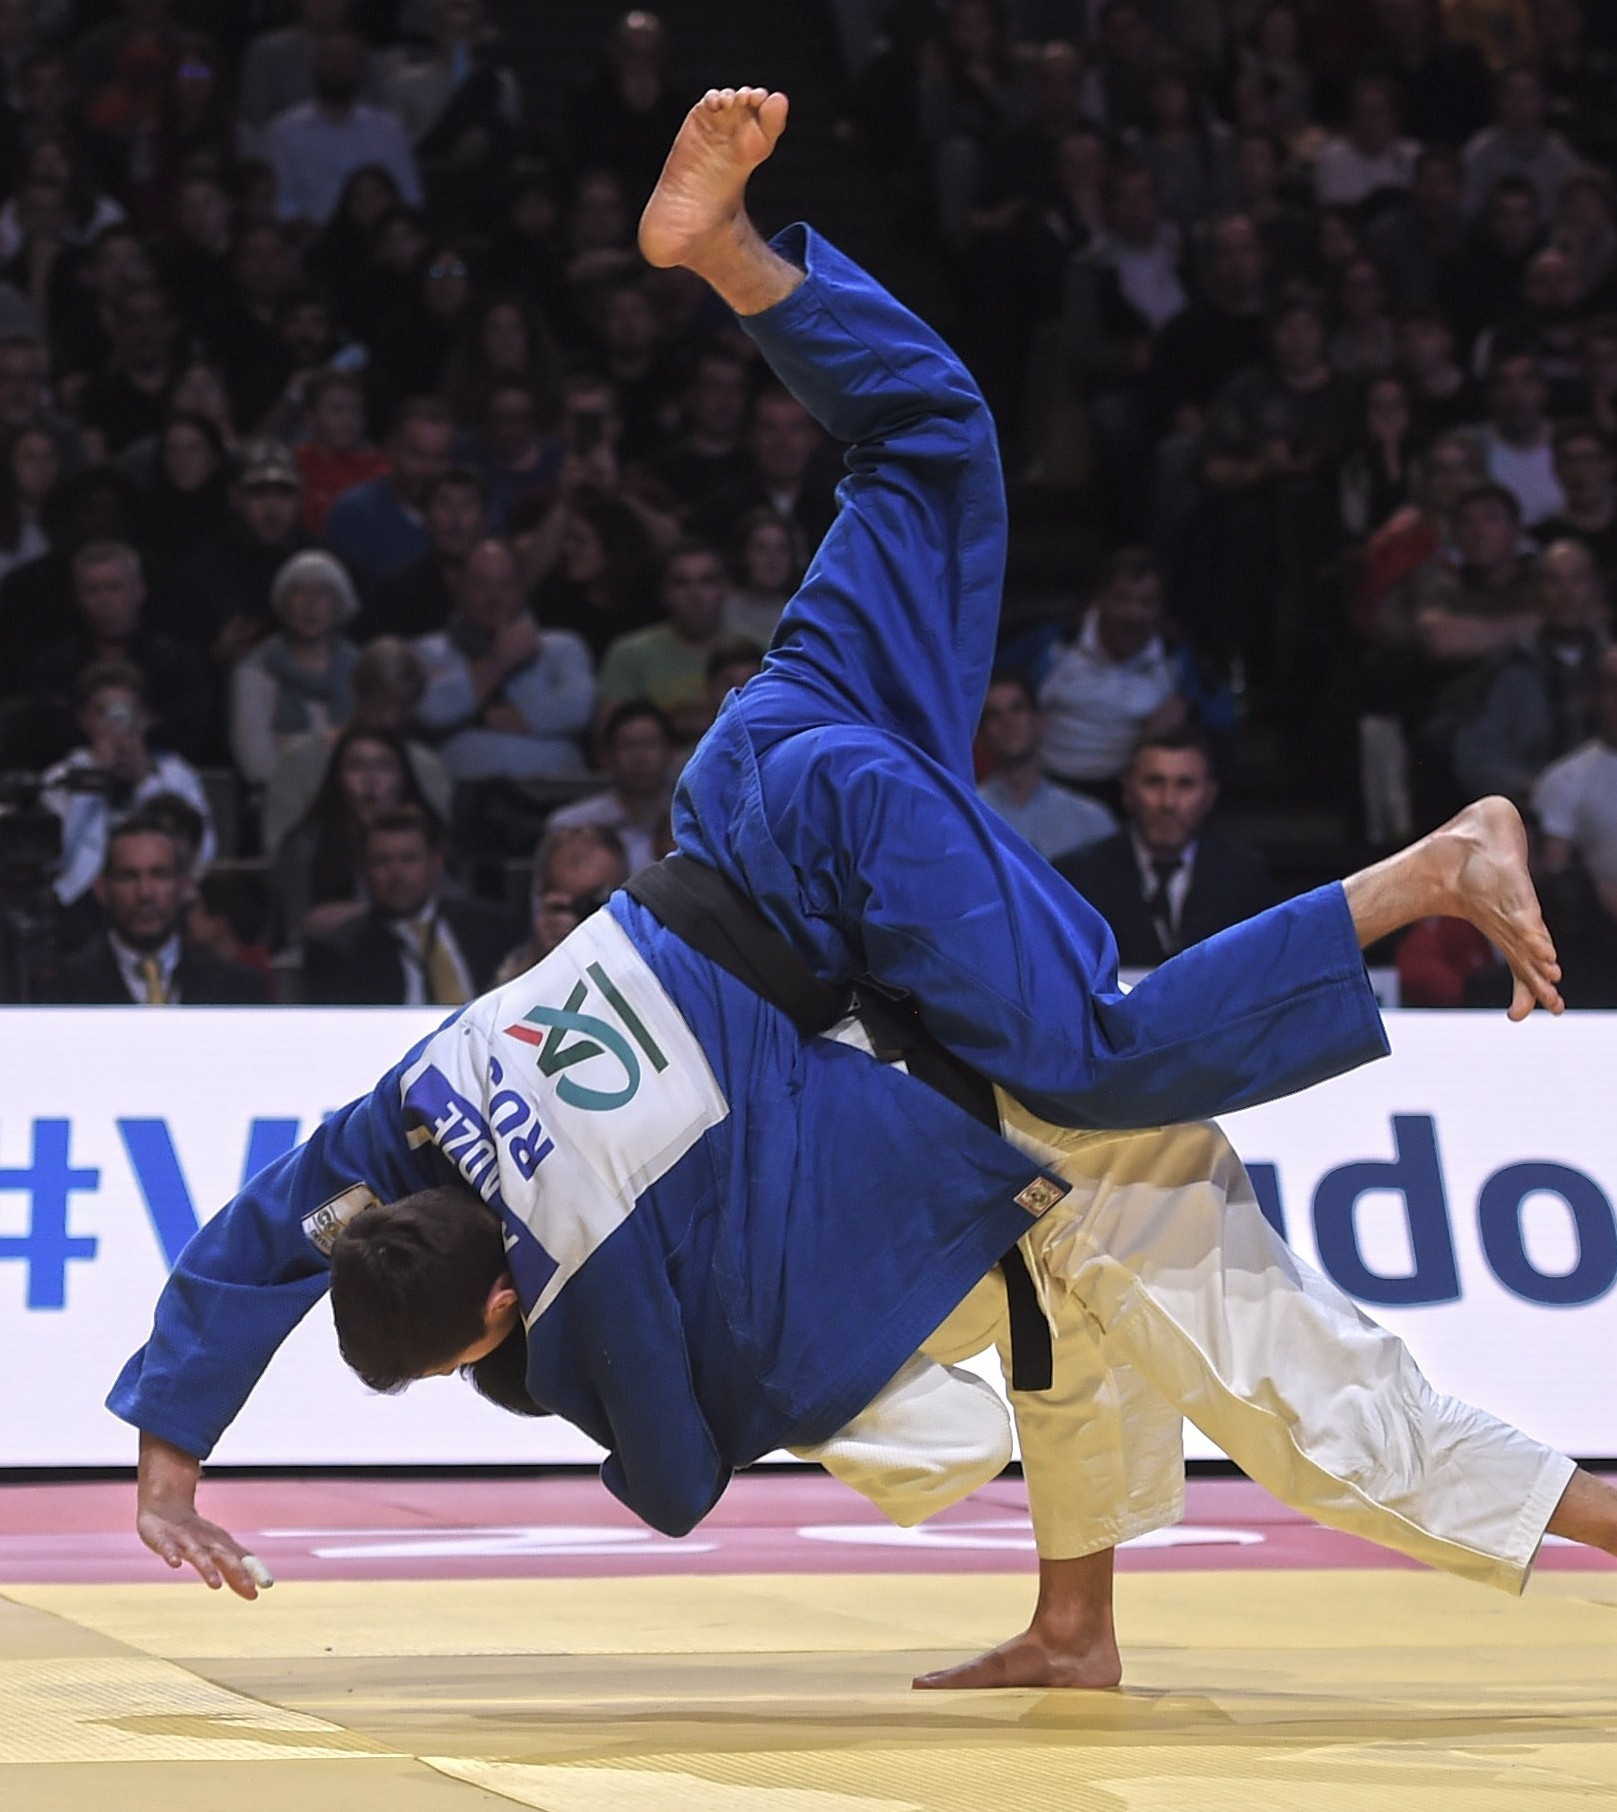 Japan's Nagayama Ryuju produced a remarkable comeback in the final of the men's under-60kg against Russia's Yago Abuladze to give his Tokyo 2020 hopes a big boost ©IJF